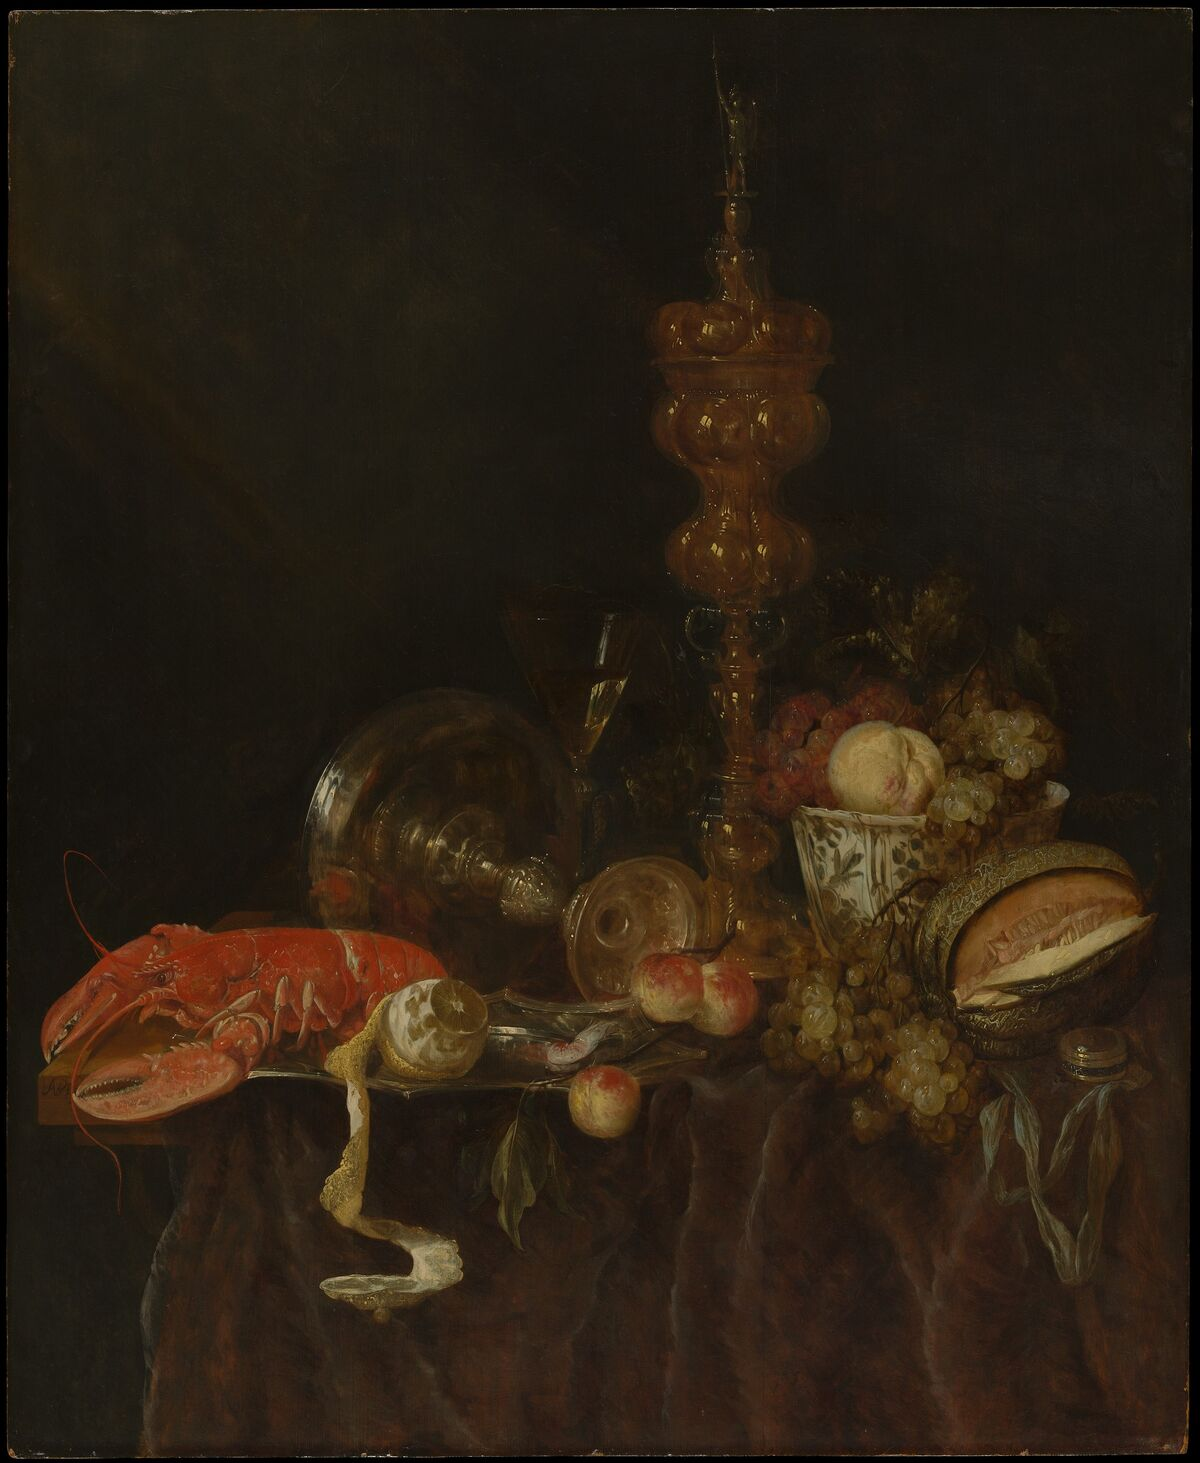 Abraham van Beyeren, Still Life with Lobster and Fruit, early 1650s. Courtesy of the Metropolitan Museum of Art.